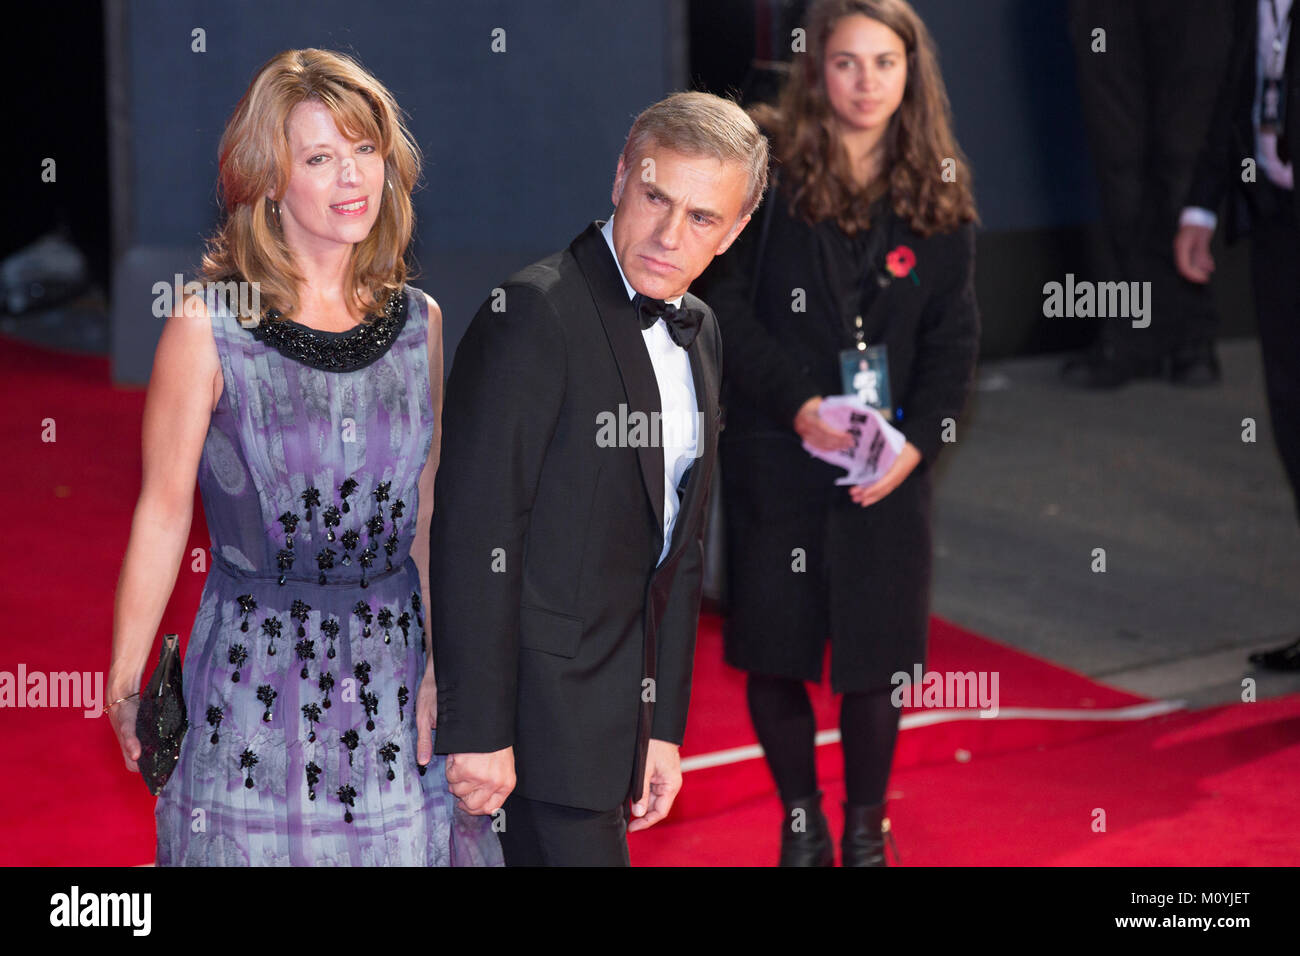 London, UK, 26 October 2015, Christoph Waltz attends the World premiere of 'Spectre' at the Royal Albert - Stock Image